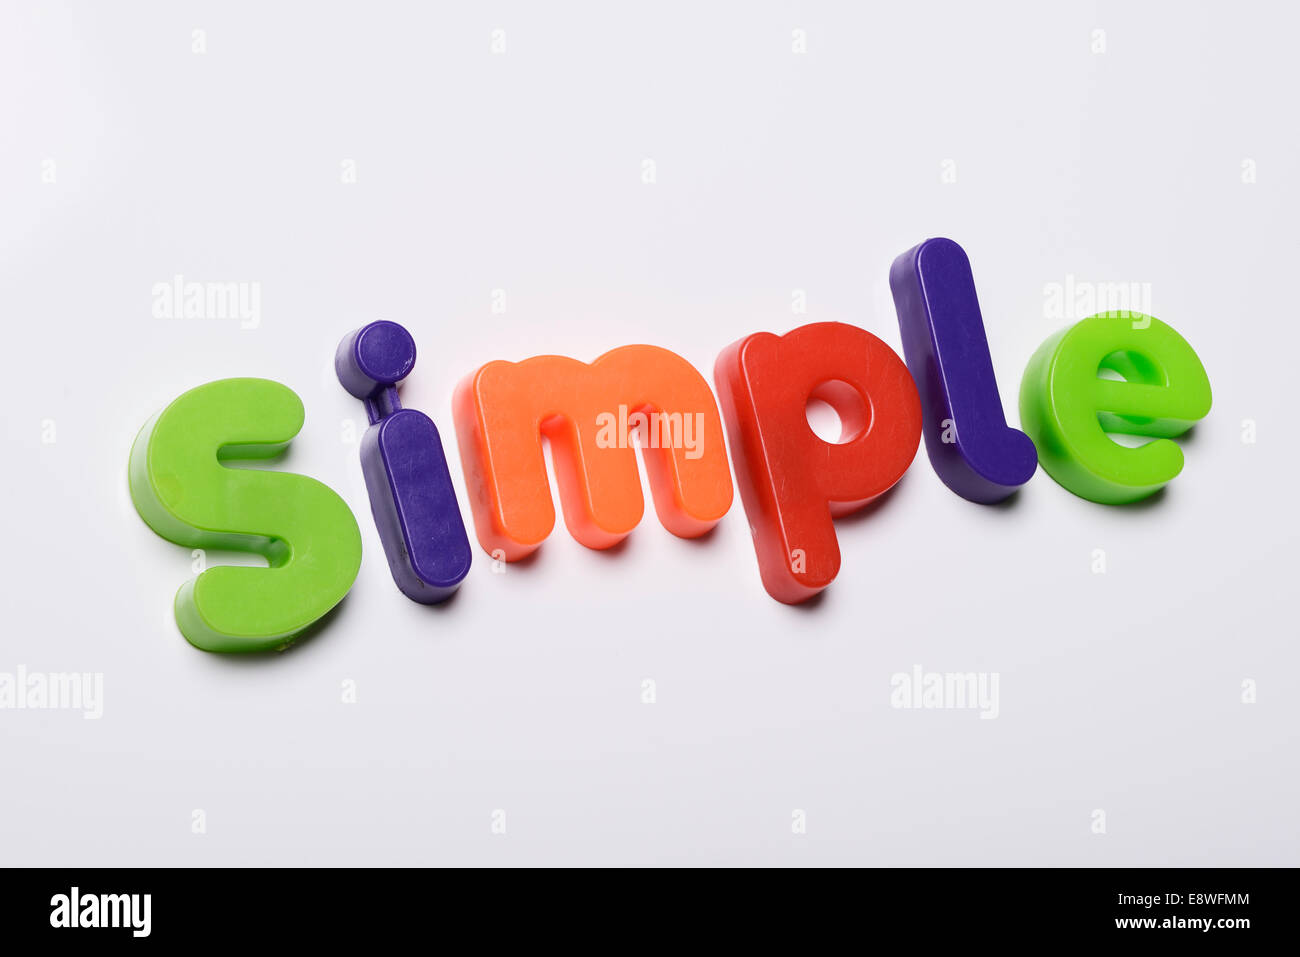 Simple made from magnetic fridge letters - Stock Image